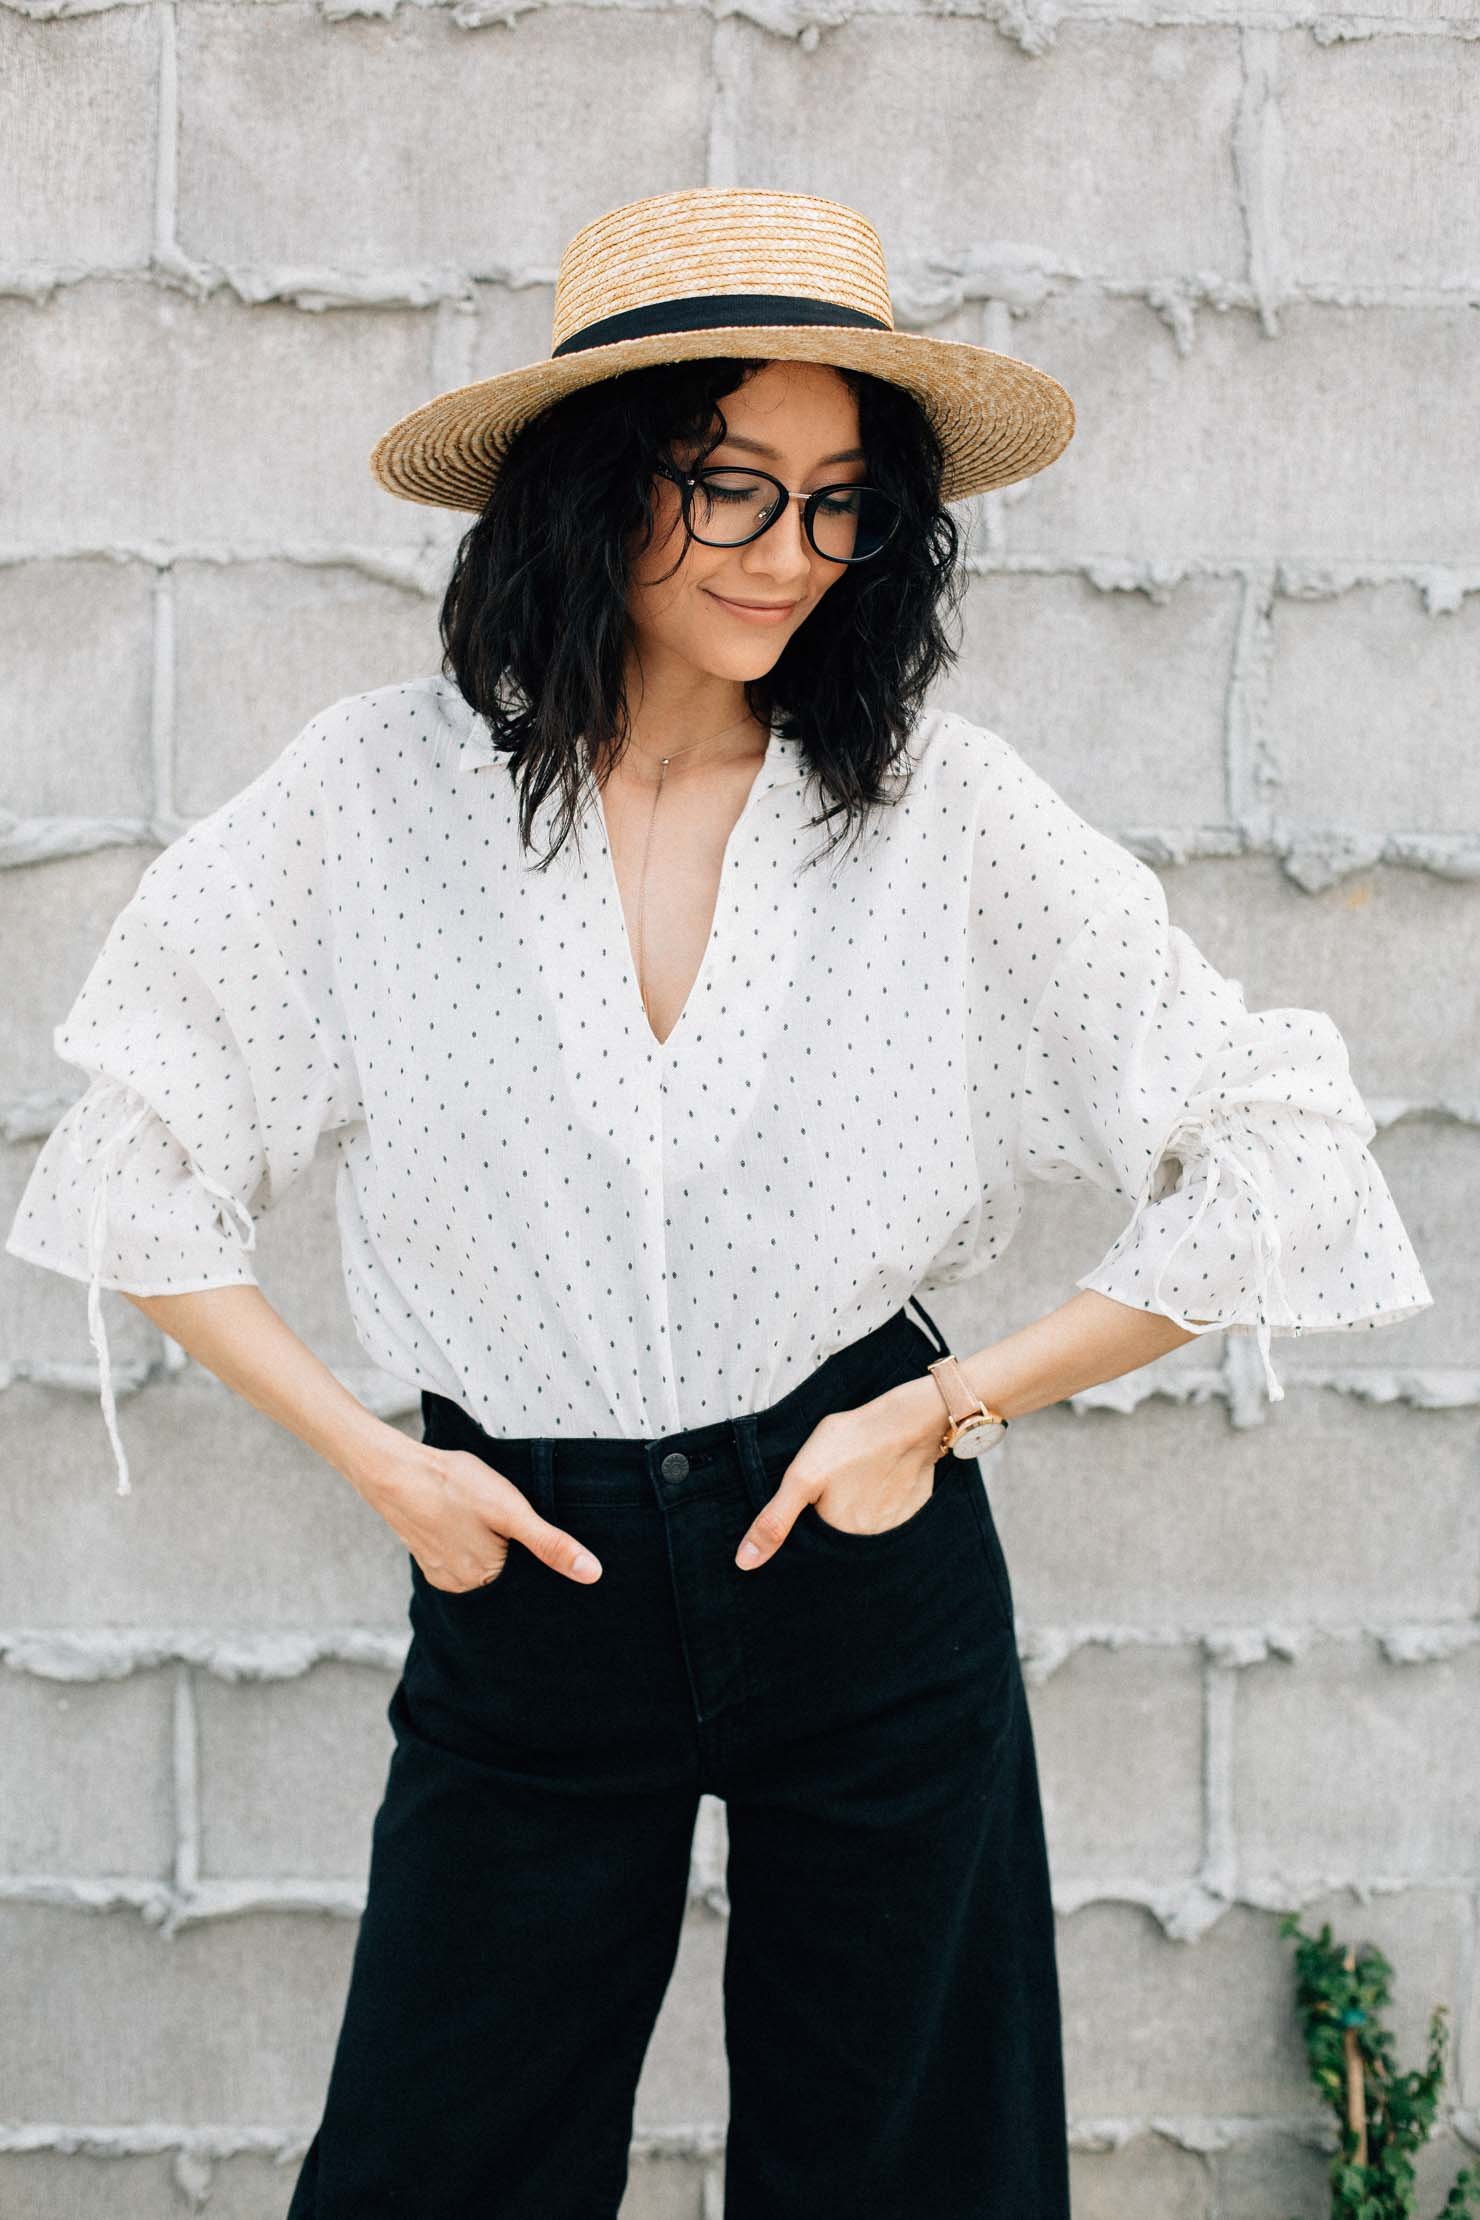 Lilly Beltran of Daily Craving blog styles a bell sleeve shirt with a straw hat and wide leg denim for an effortless spring look